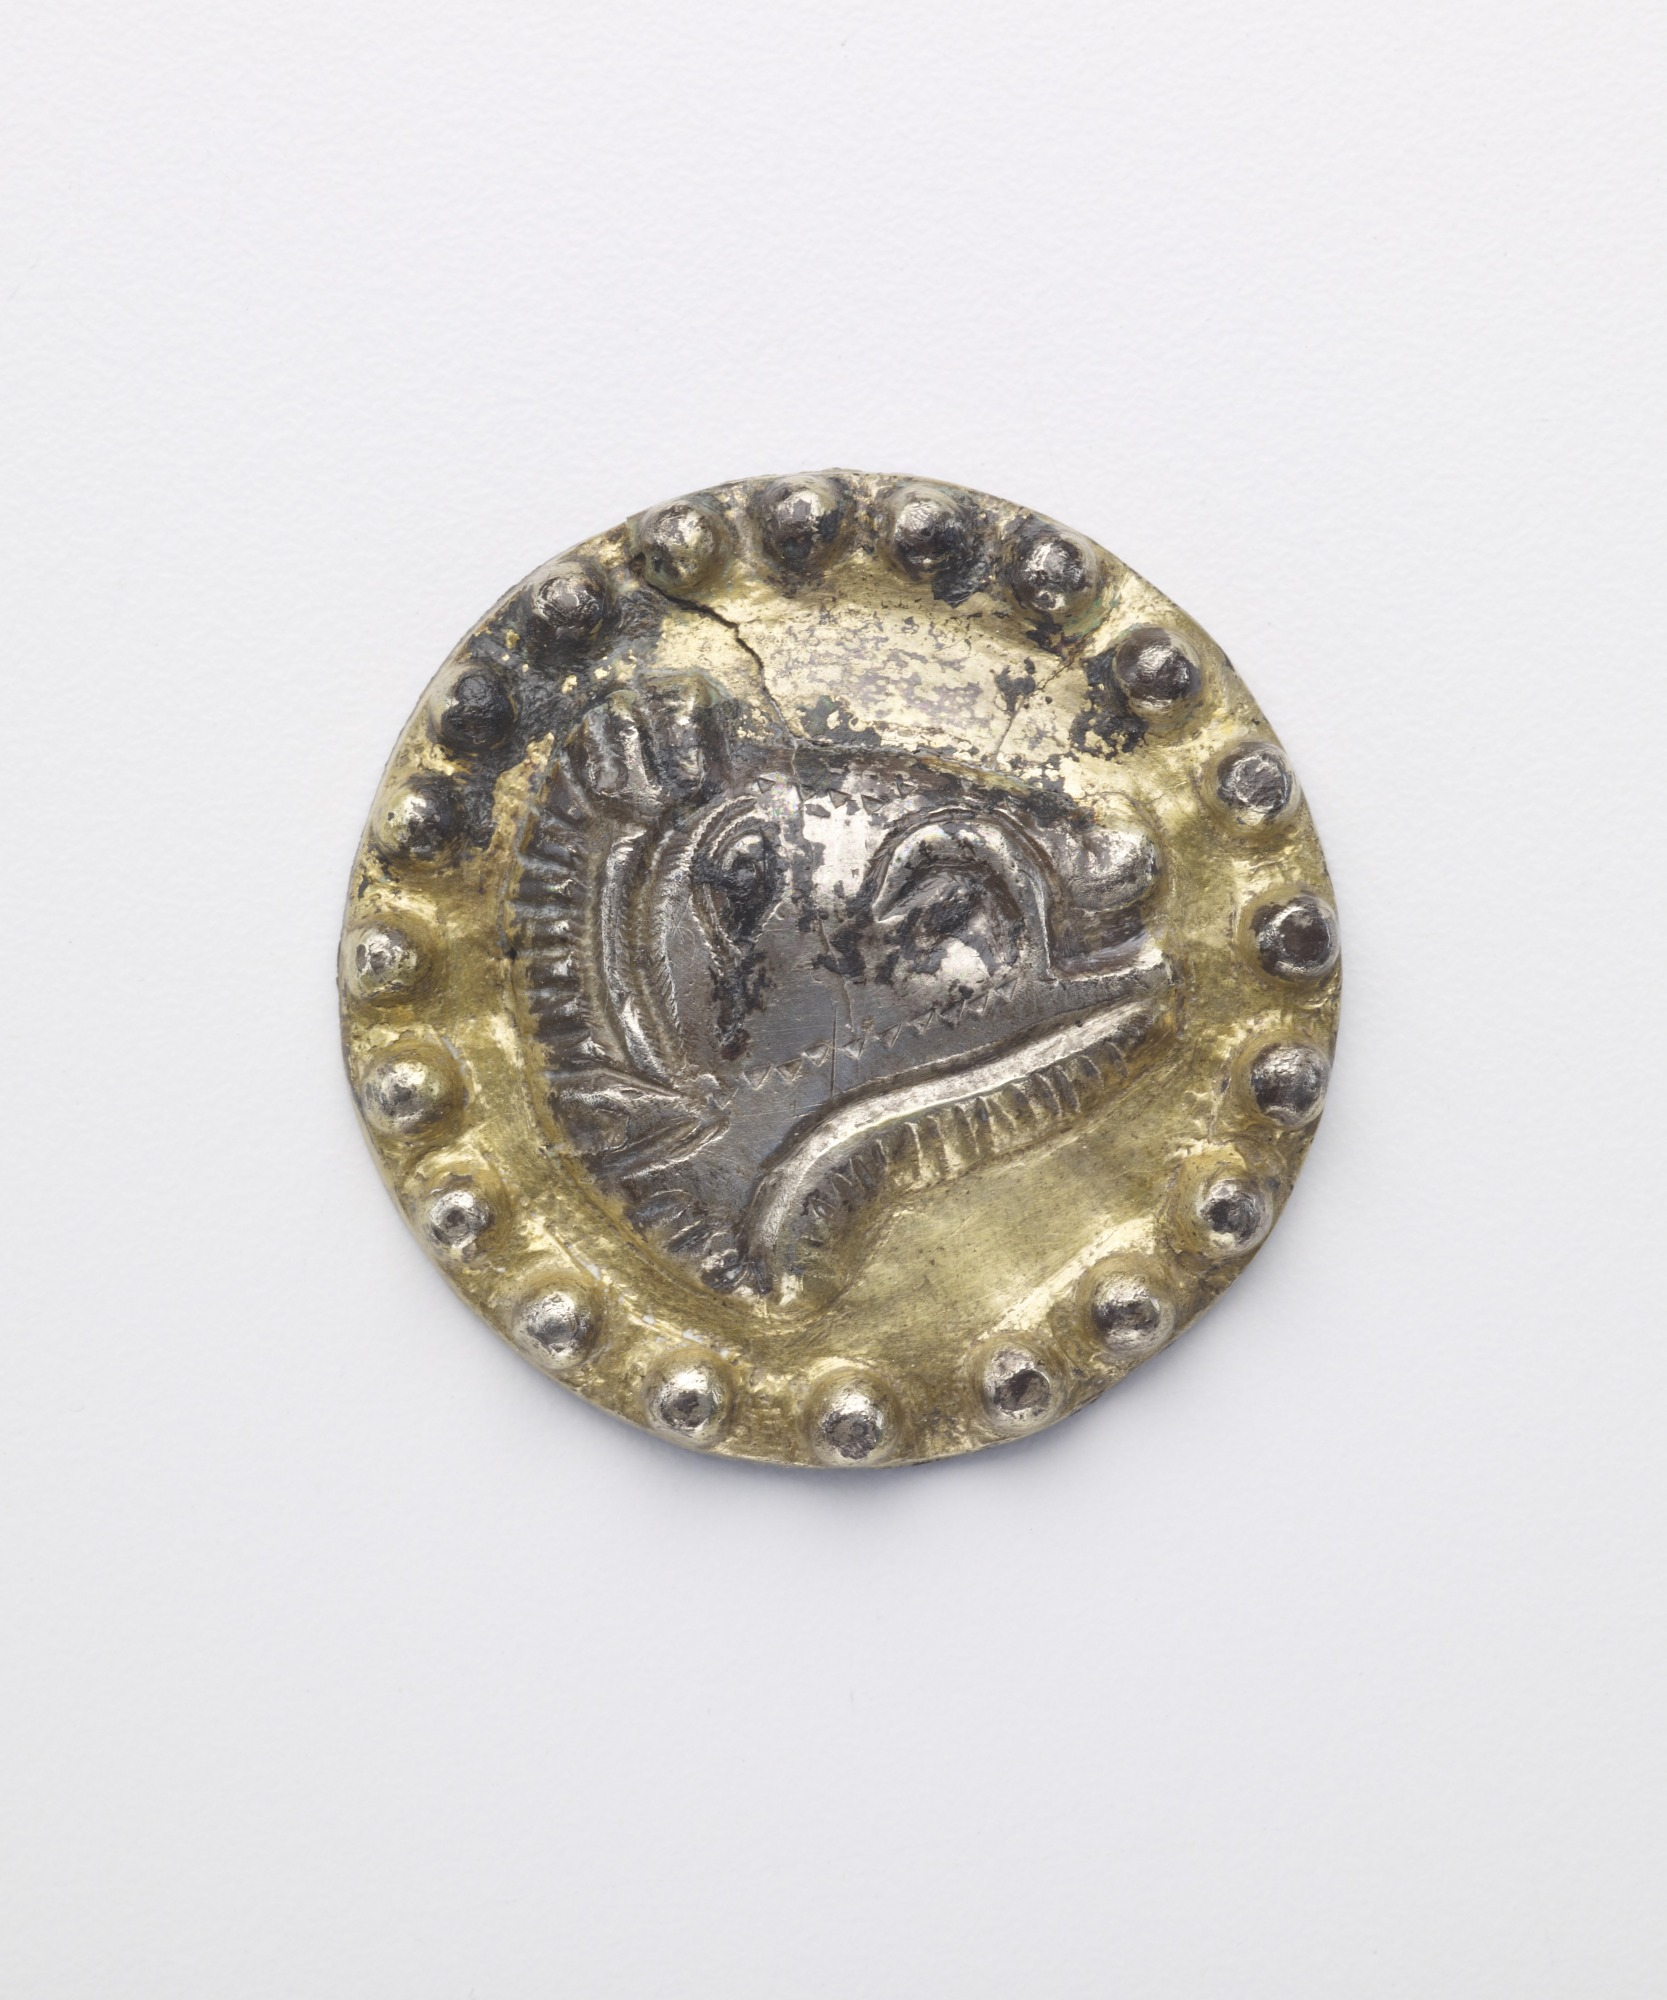 0.1: Six boar-head roundels (formerly applied to S1987.133.1)